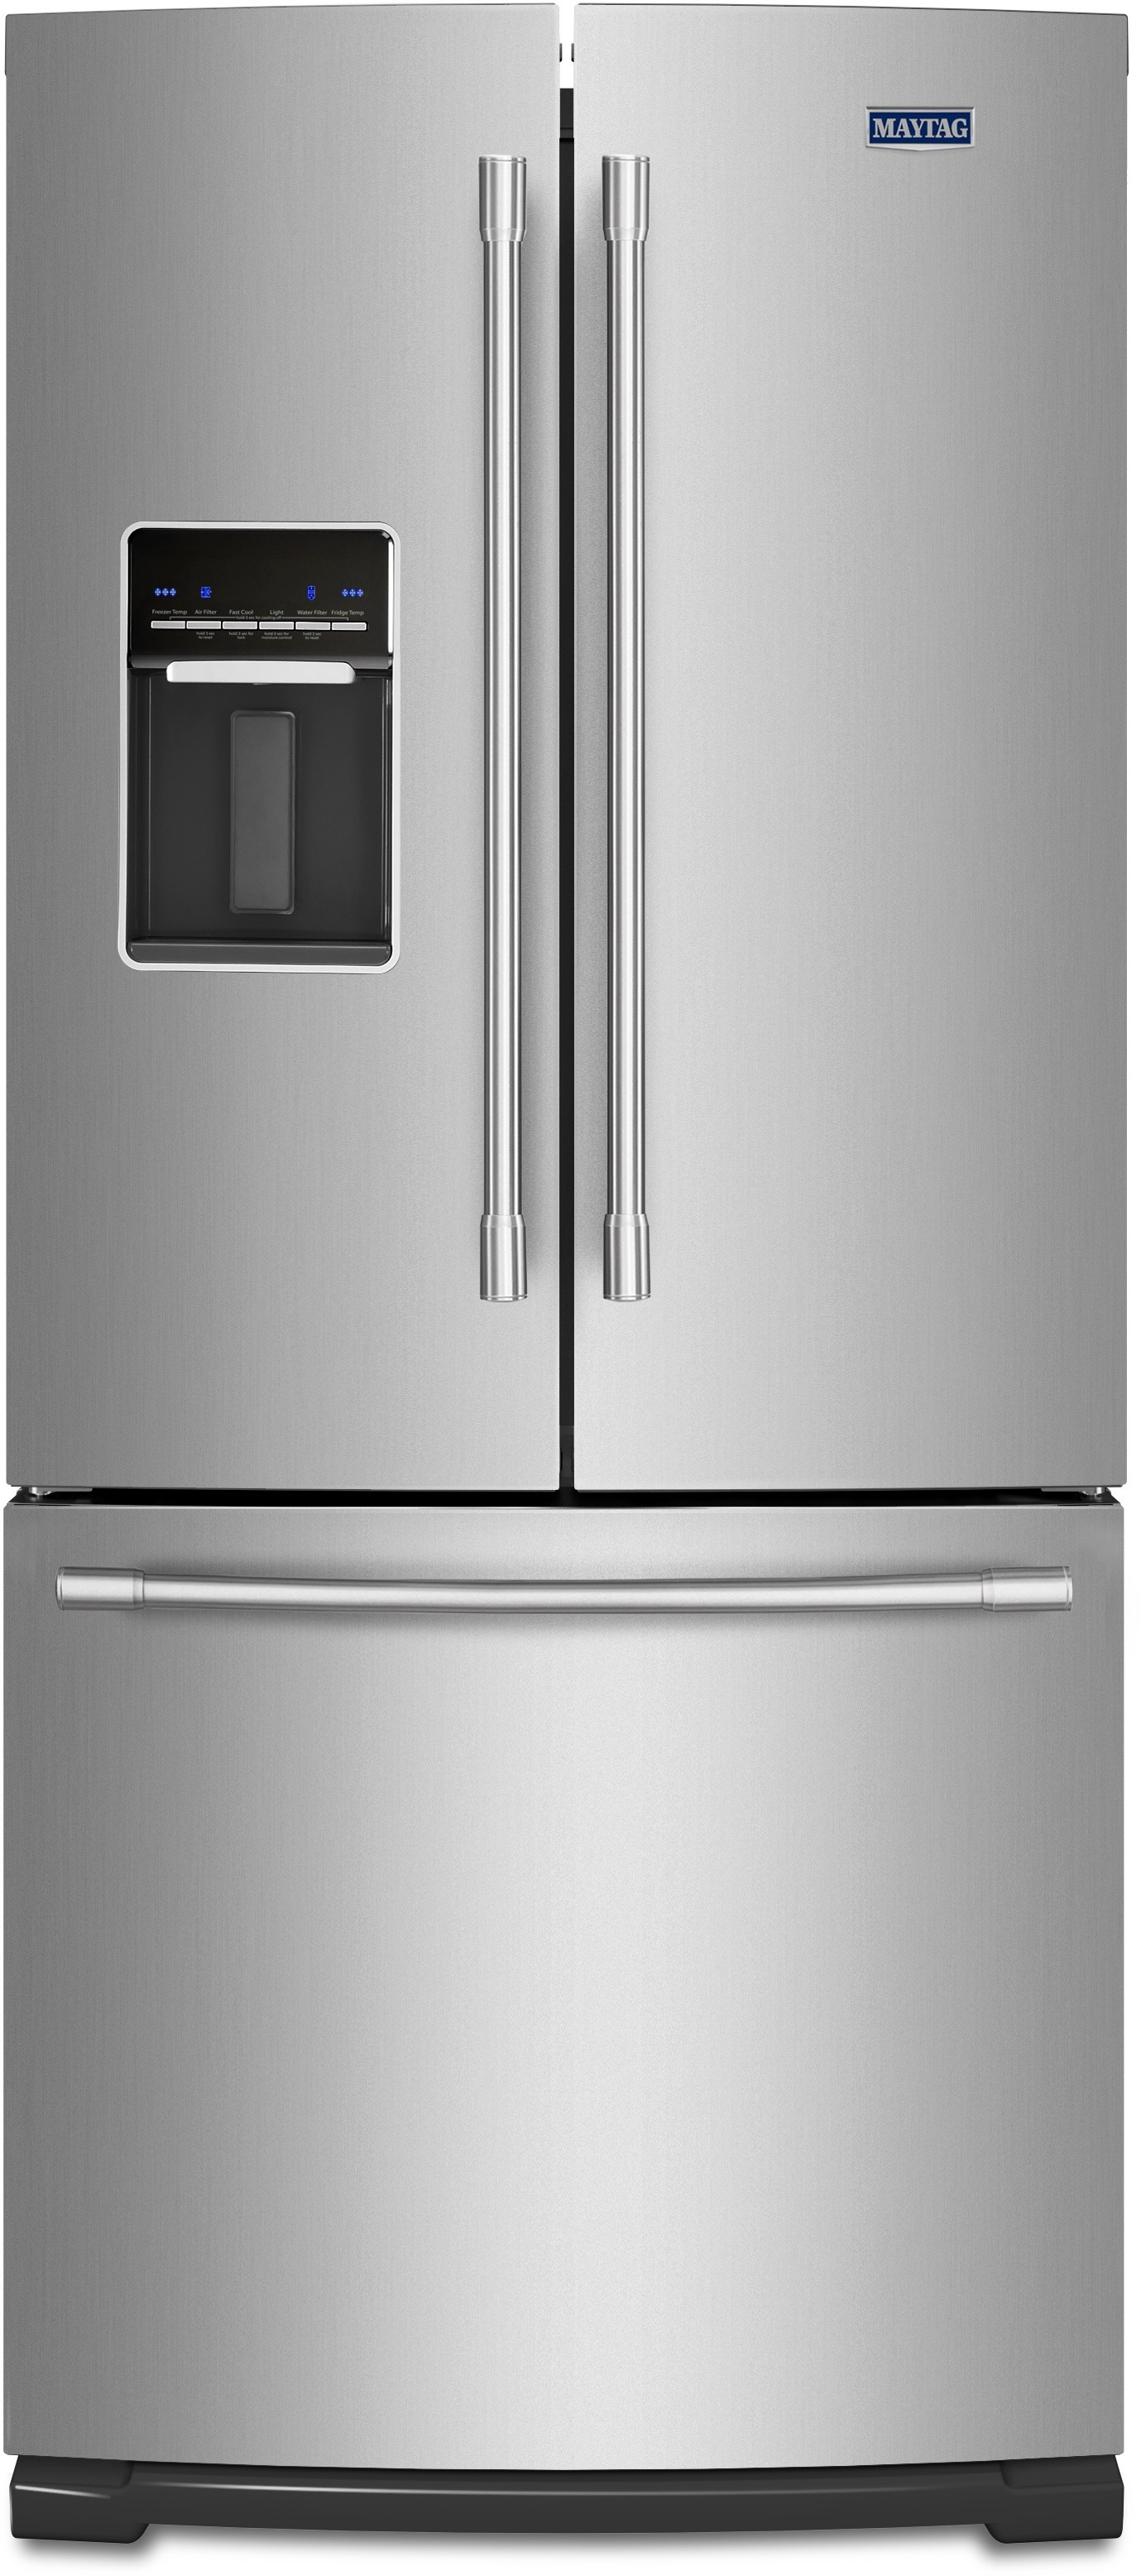 Maytag french door refrigerator reviews - Maytag Mfw2055frz 30 Inch French Door Refrigerator With Temperature Controlled Drawer Led Lighting Ice Maker 20 Cu Ft Capacity Adjustable Spill Proof